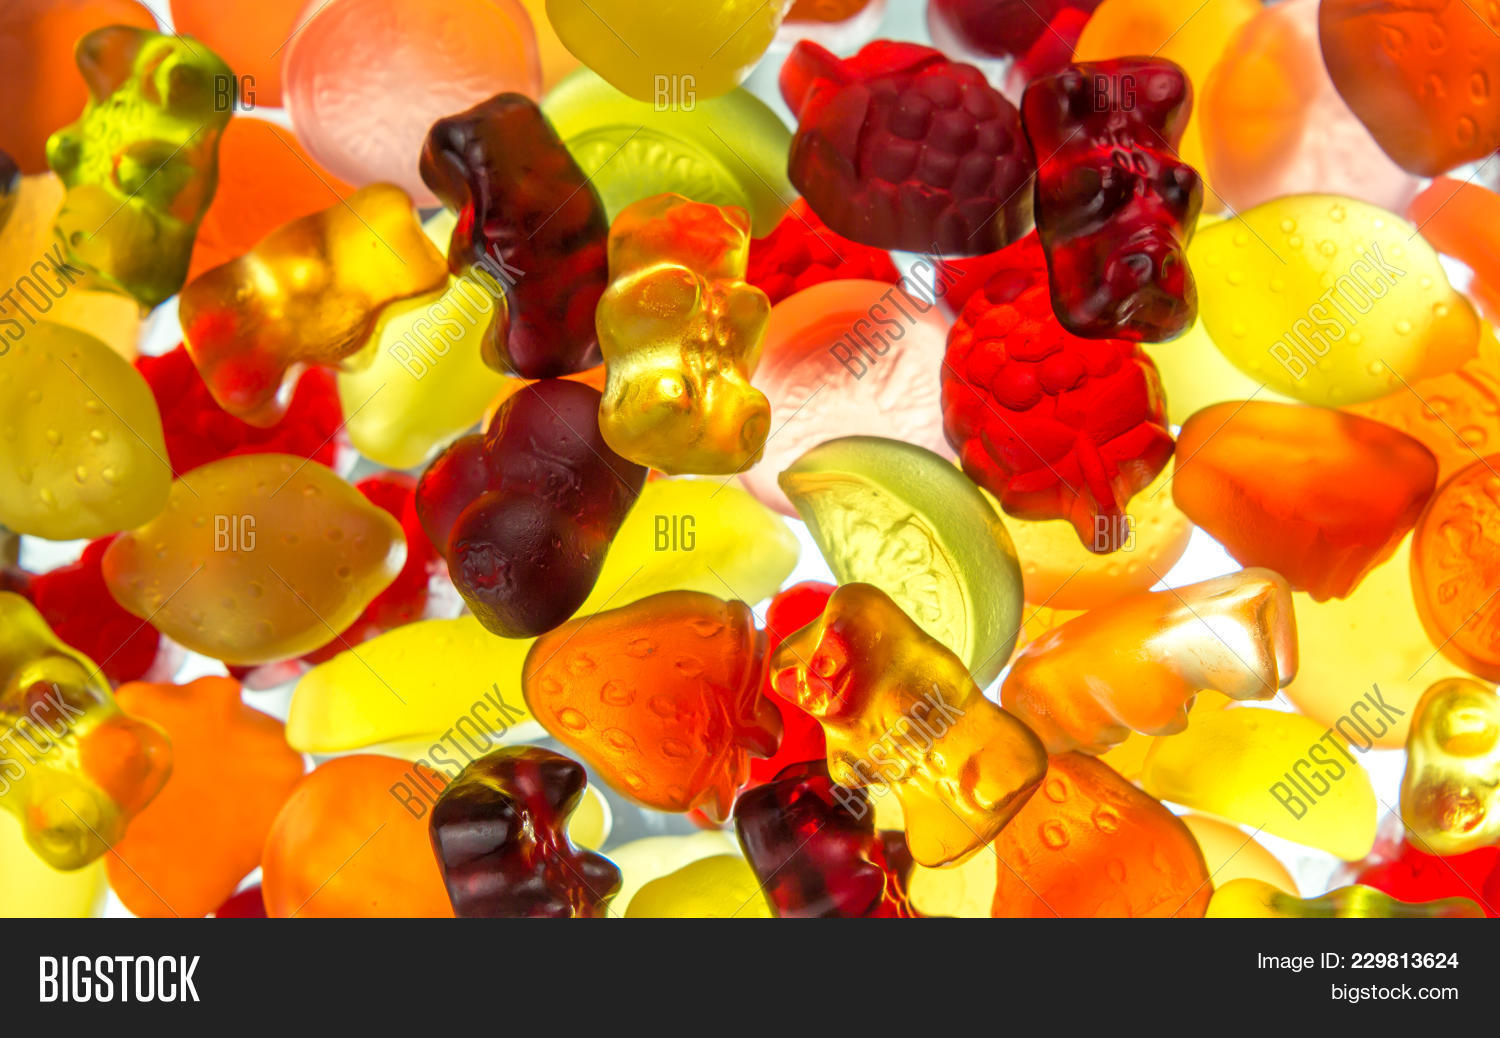 Colorful Fruit Gums Image Photo Free Trial Bigstock